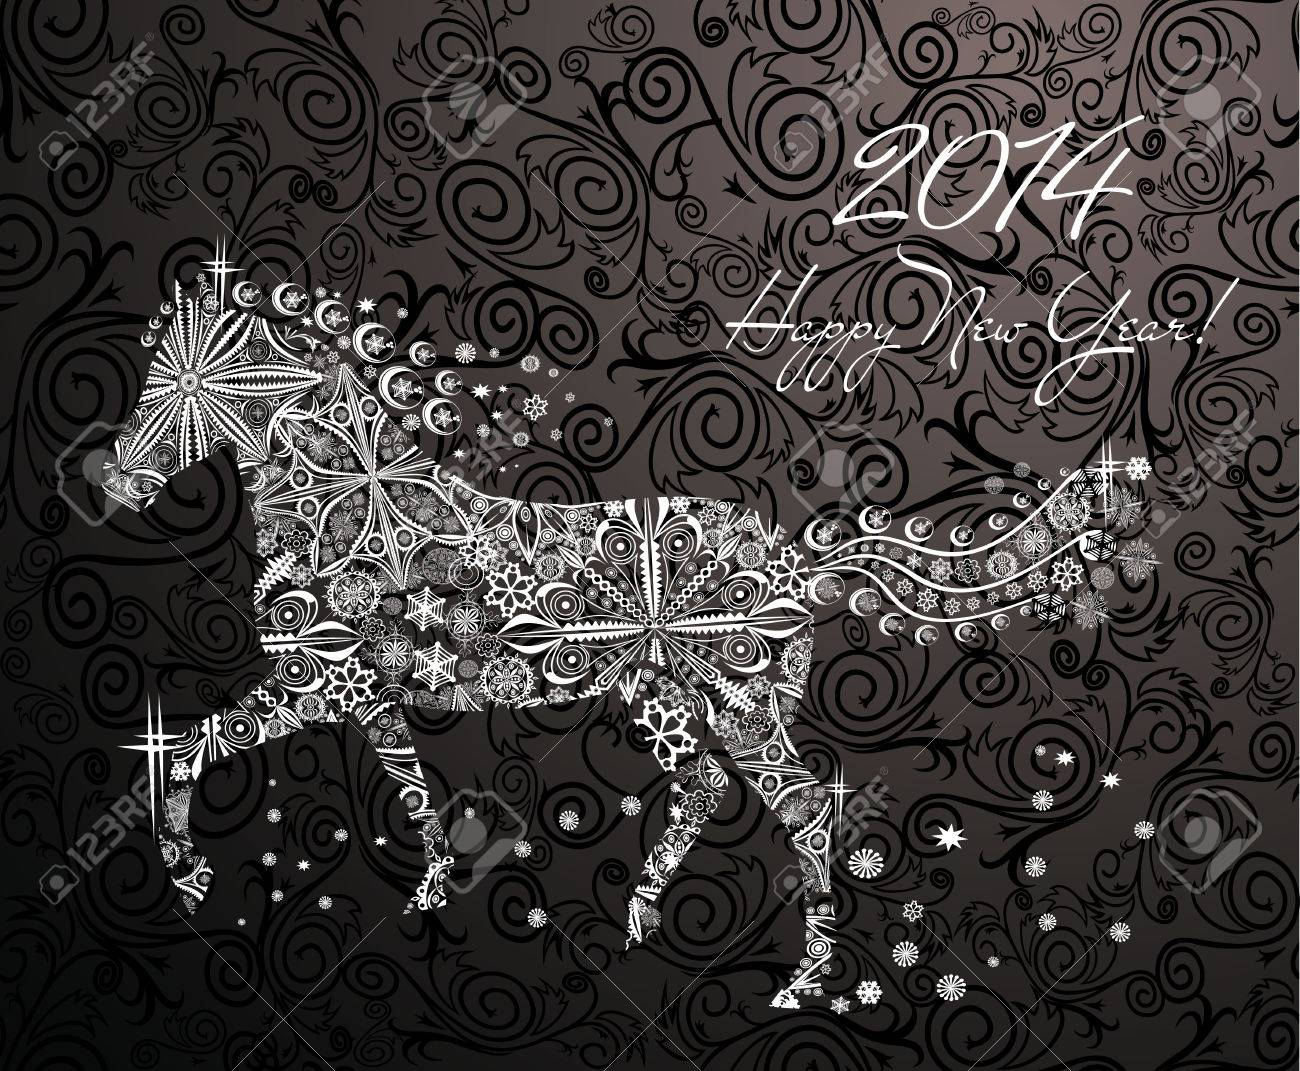 Year of horse Happy new year 2014 - 23892913